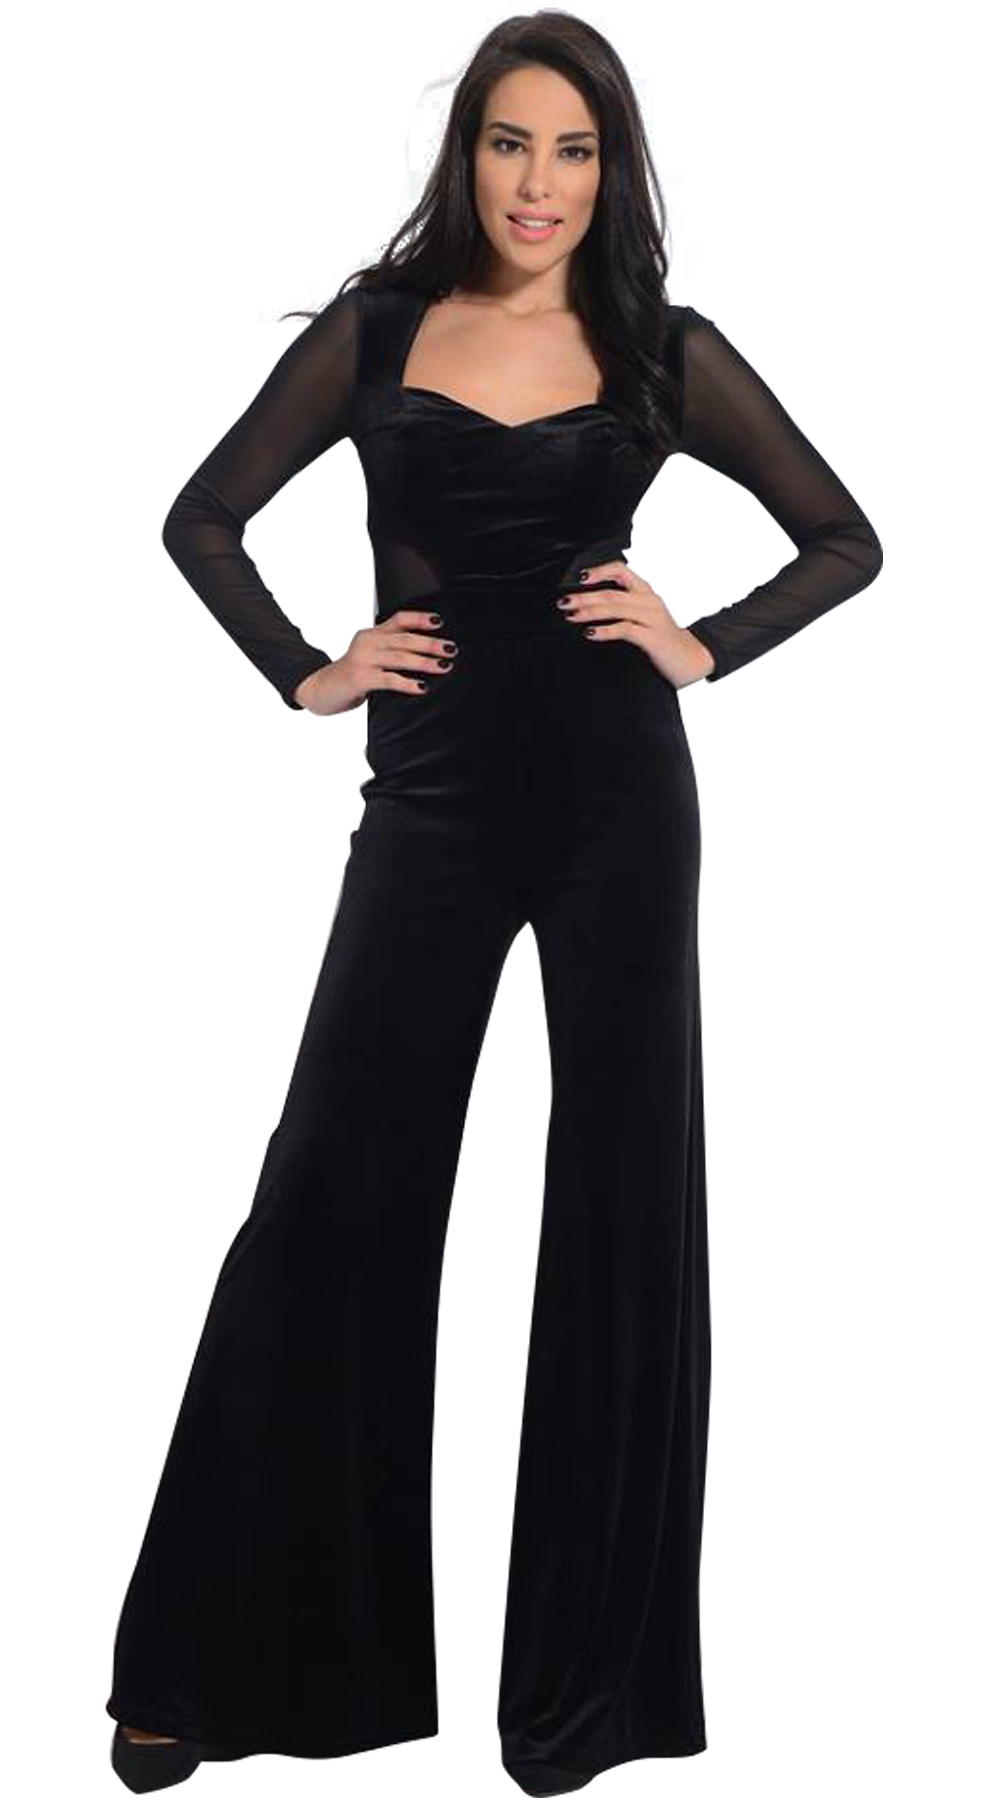 b74a4be5bf70 Woman s velvet flared jumpsuit